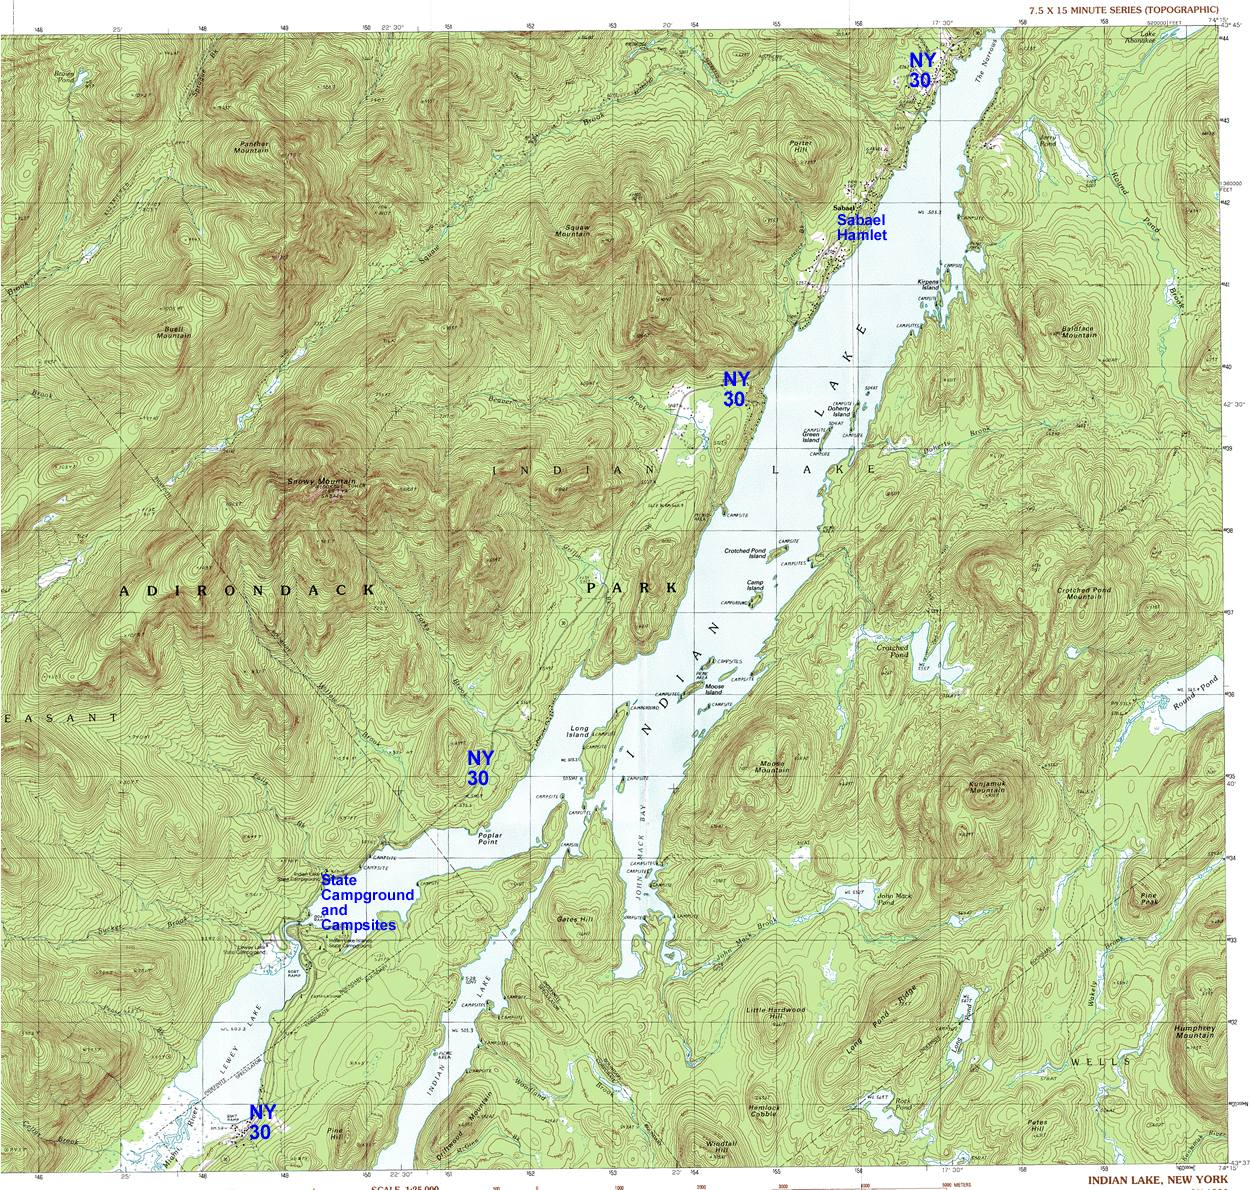 NY Route  The Adirondack Trail Indian Lake Sabael Area - Nyc map topographic